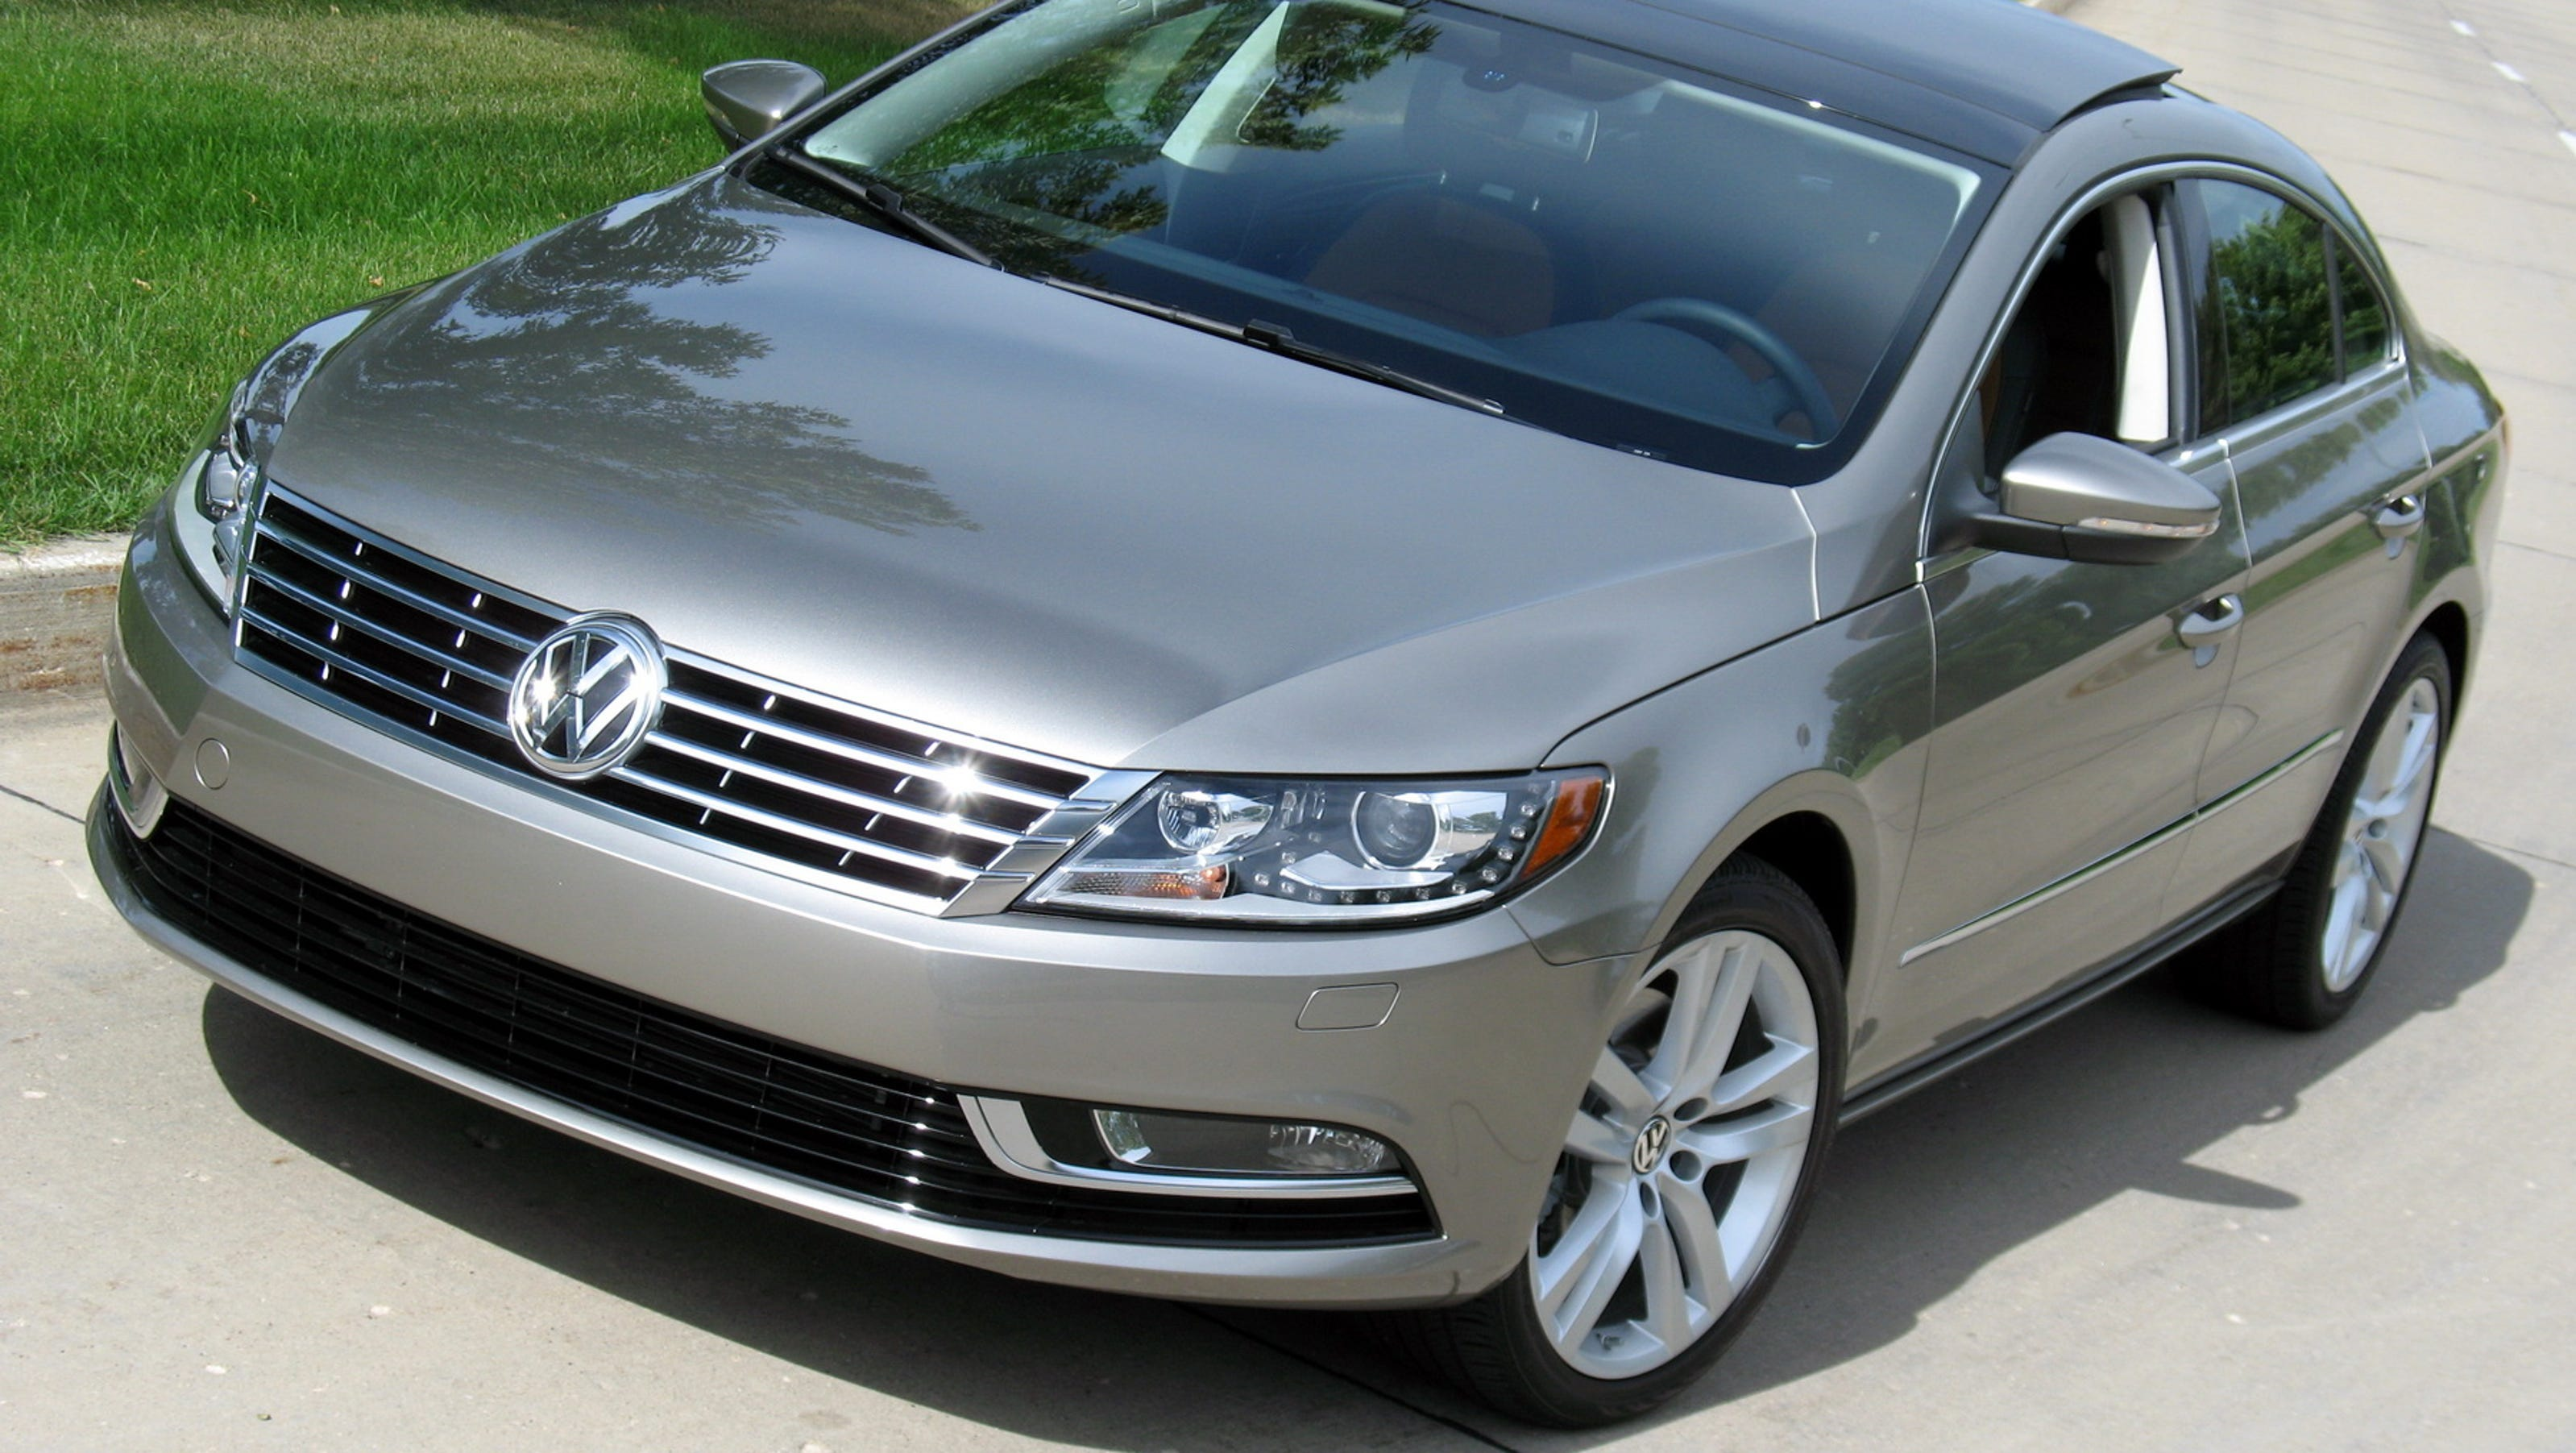 stylishly coupe like 2014 volkswagen cc sedan. Black Bedroom Furniture Sets. Home Design Ideas